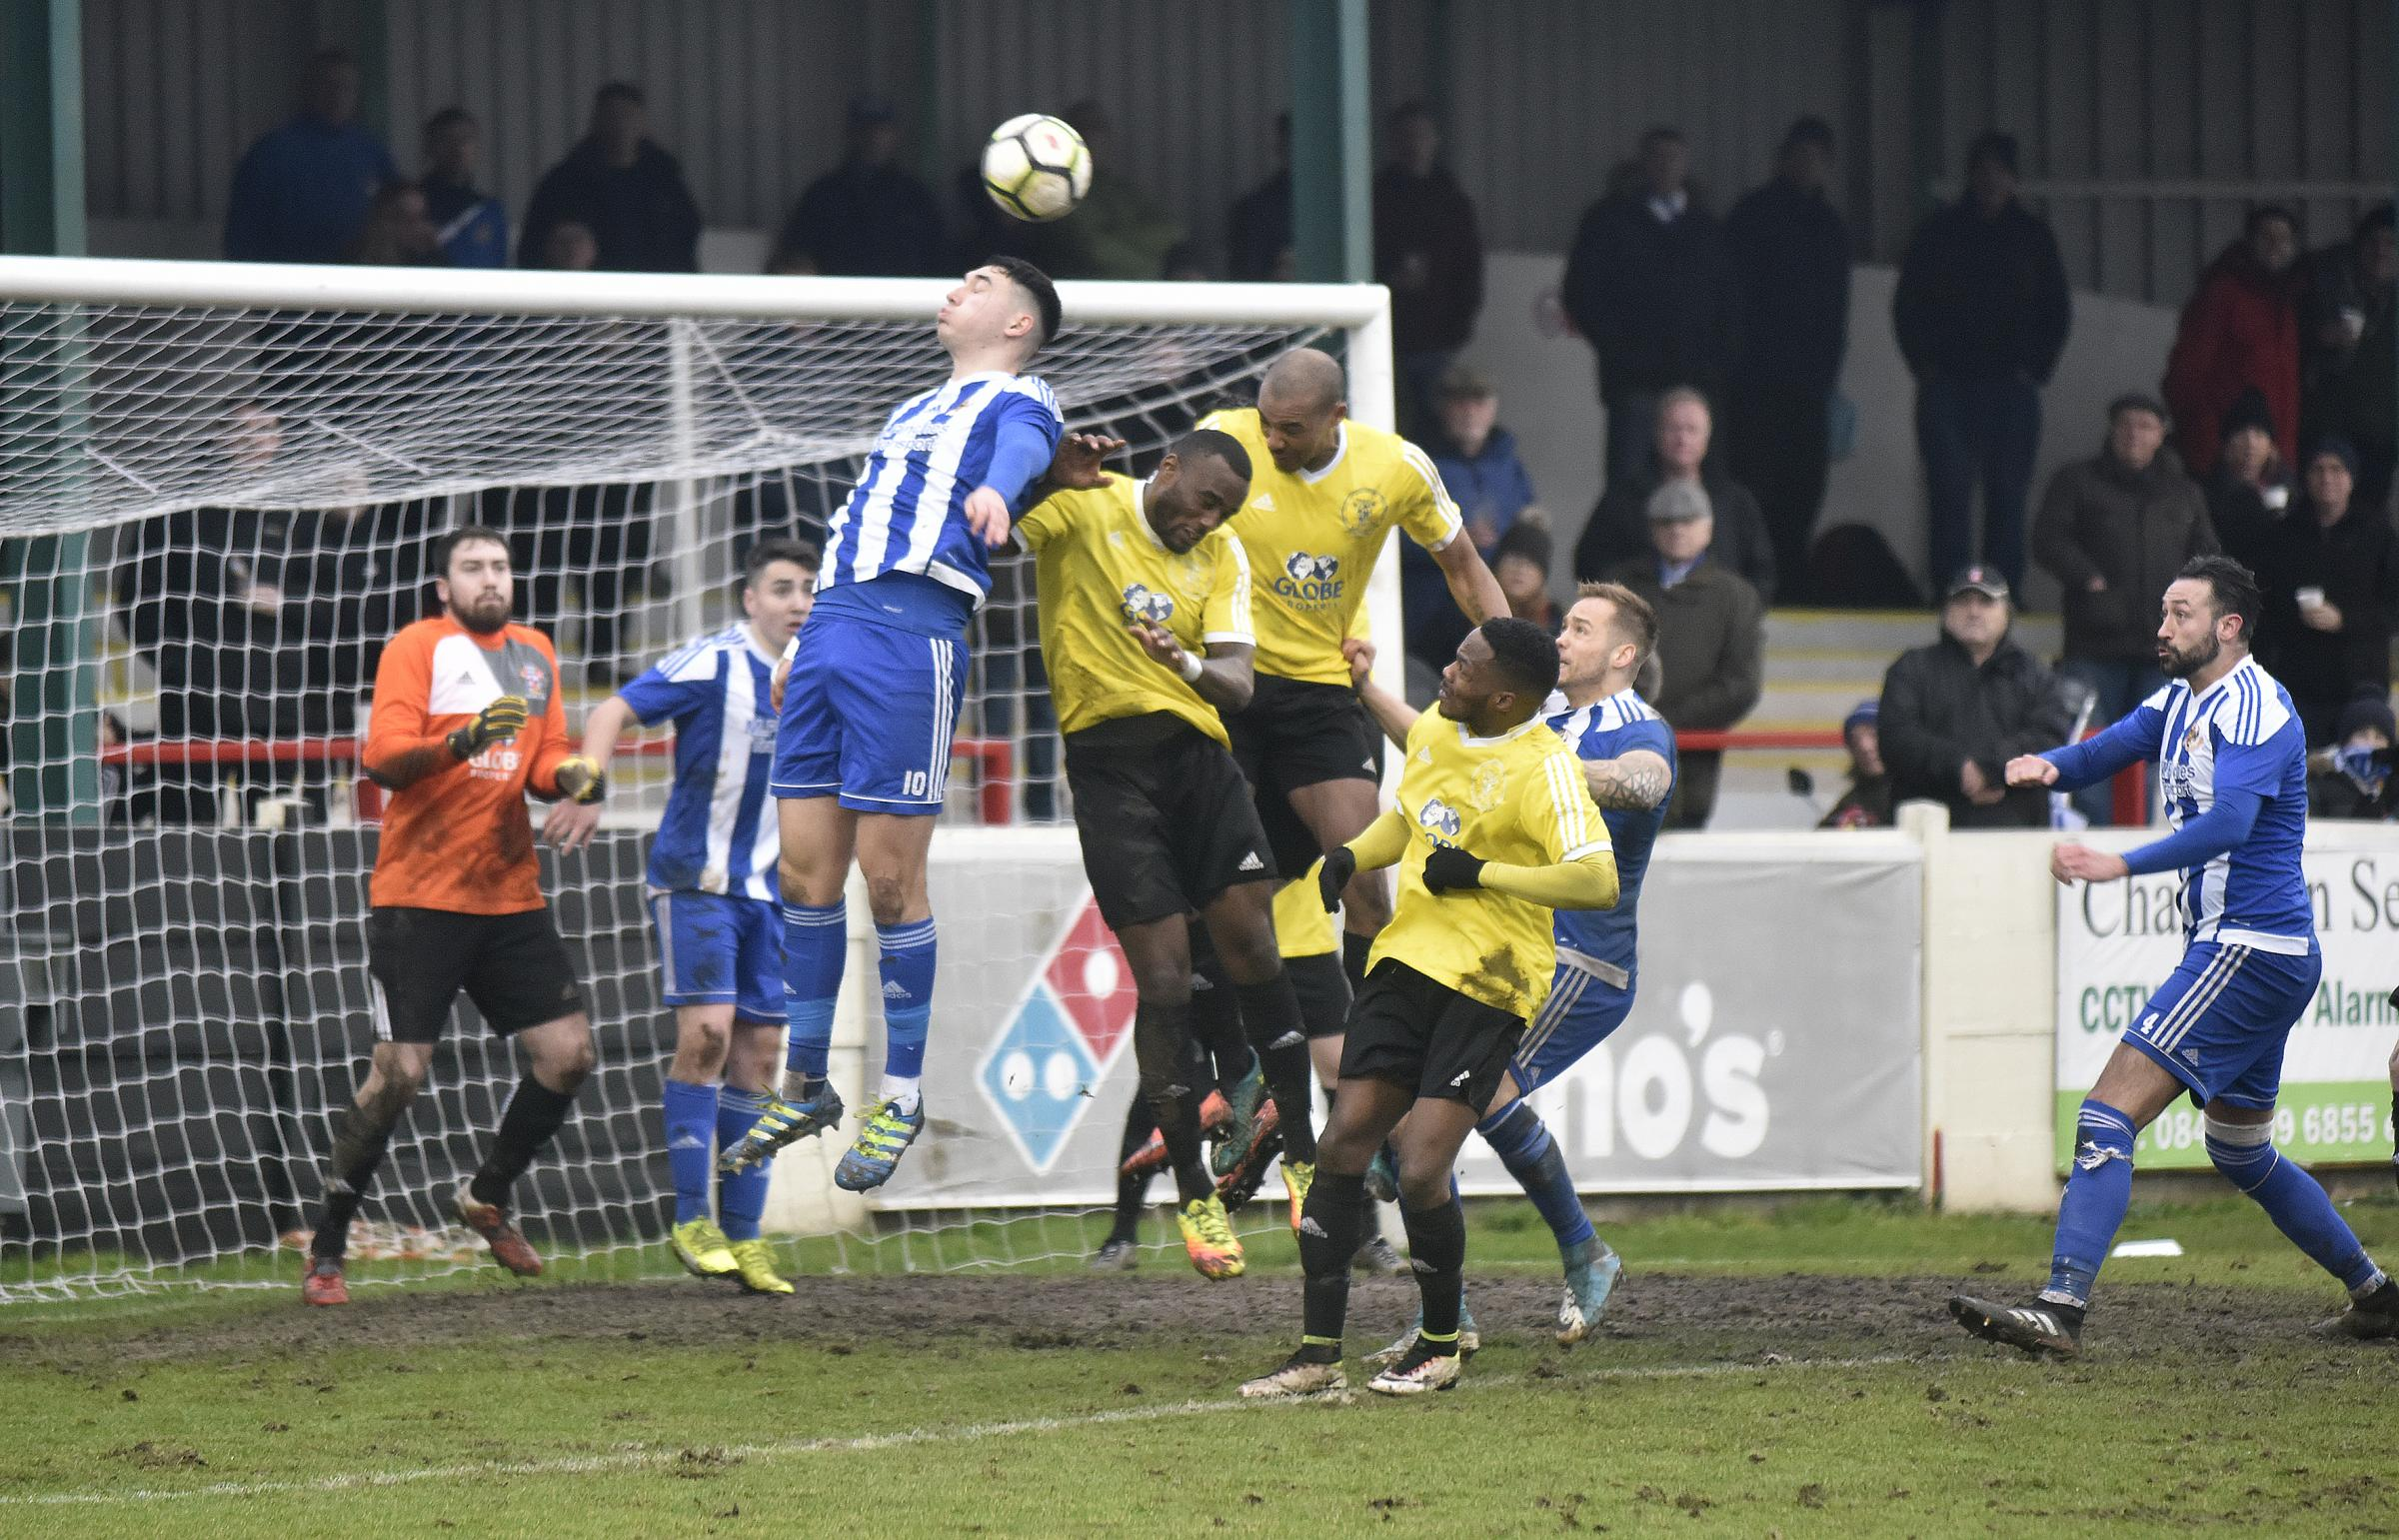 Worcester City: Provisional league line-up challenged by Tividale